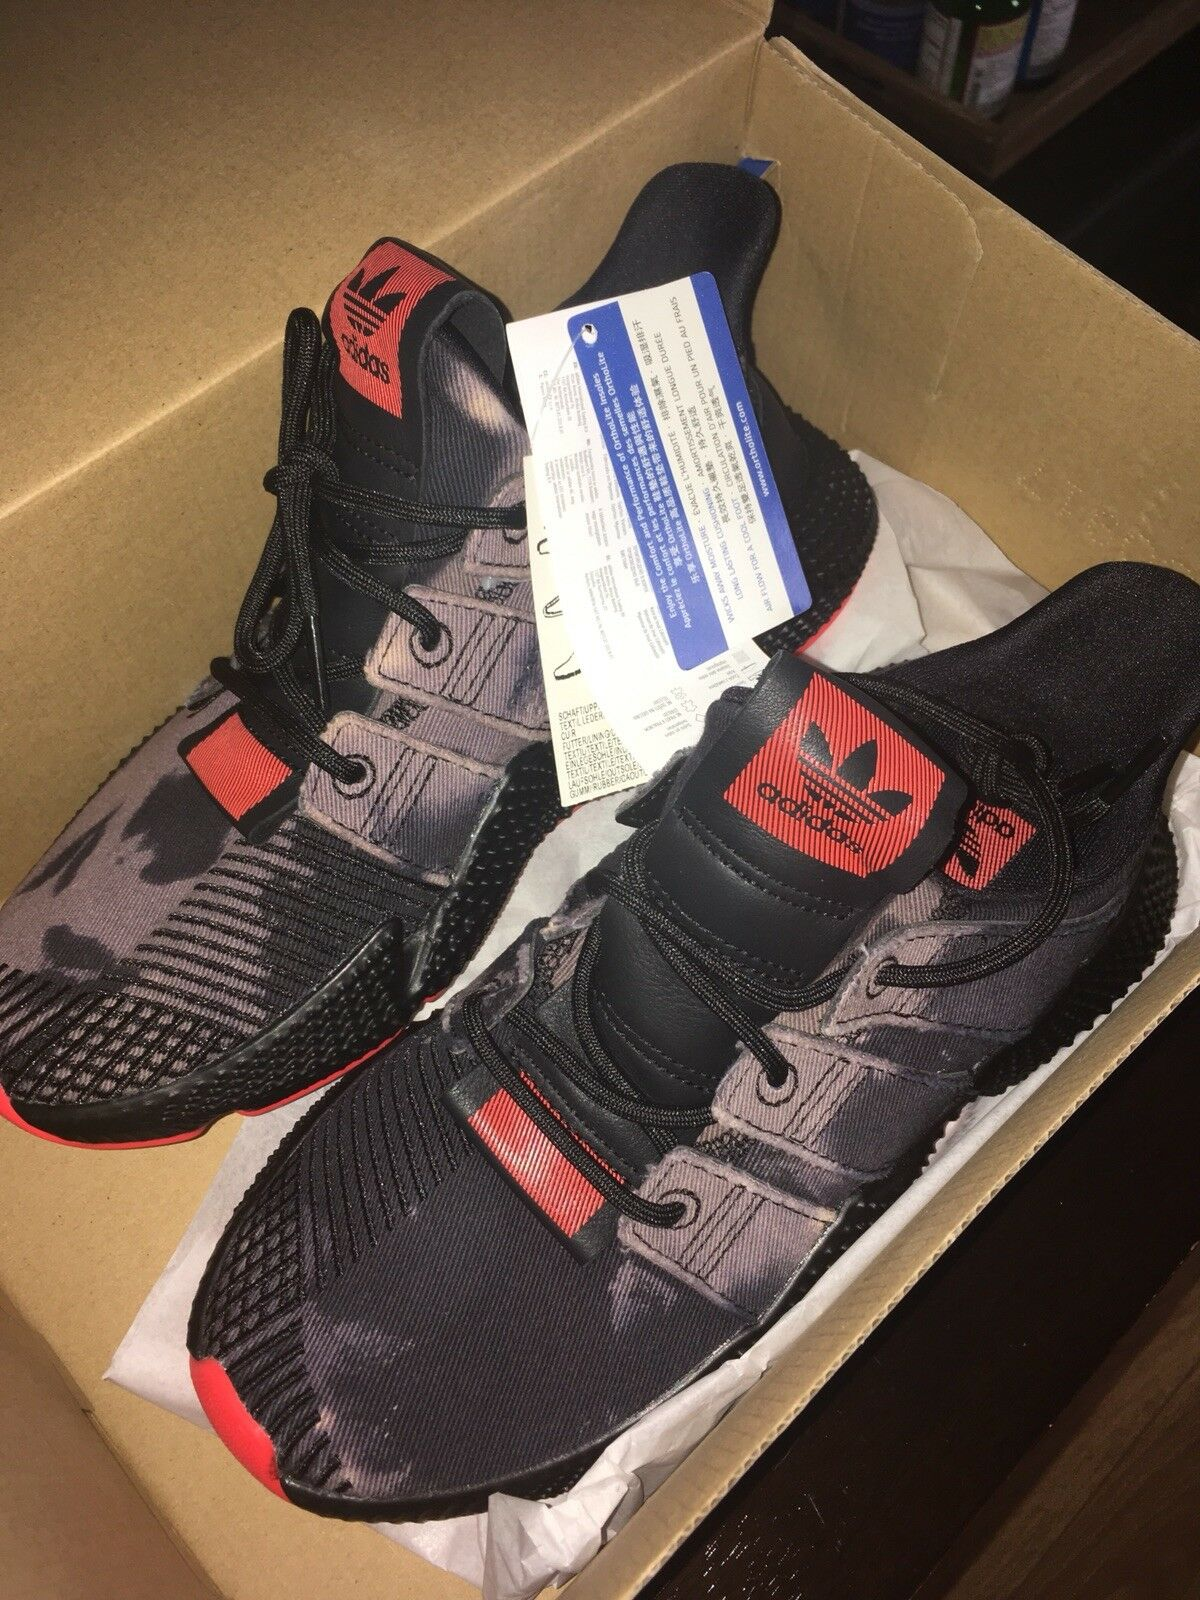 Adidas orginals prophere unisex men women Bleached orange Bold Camouflage size 5